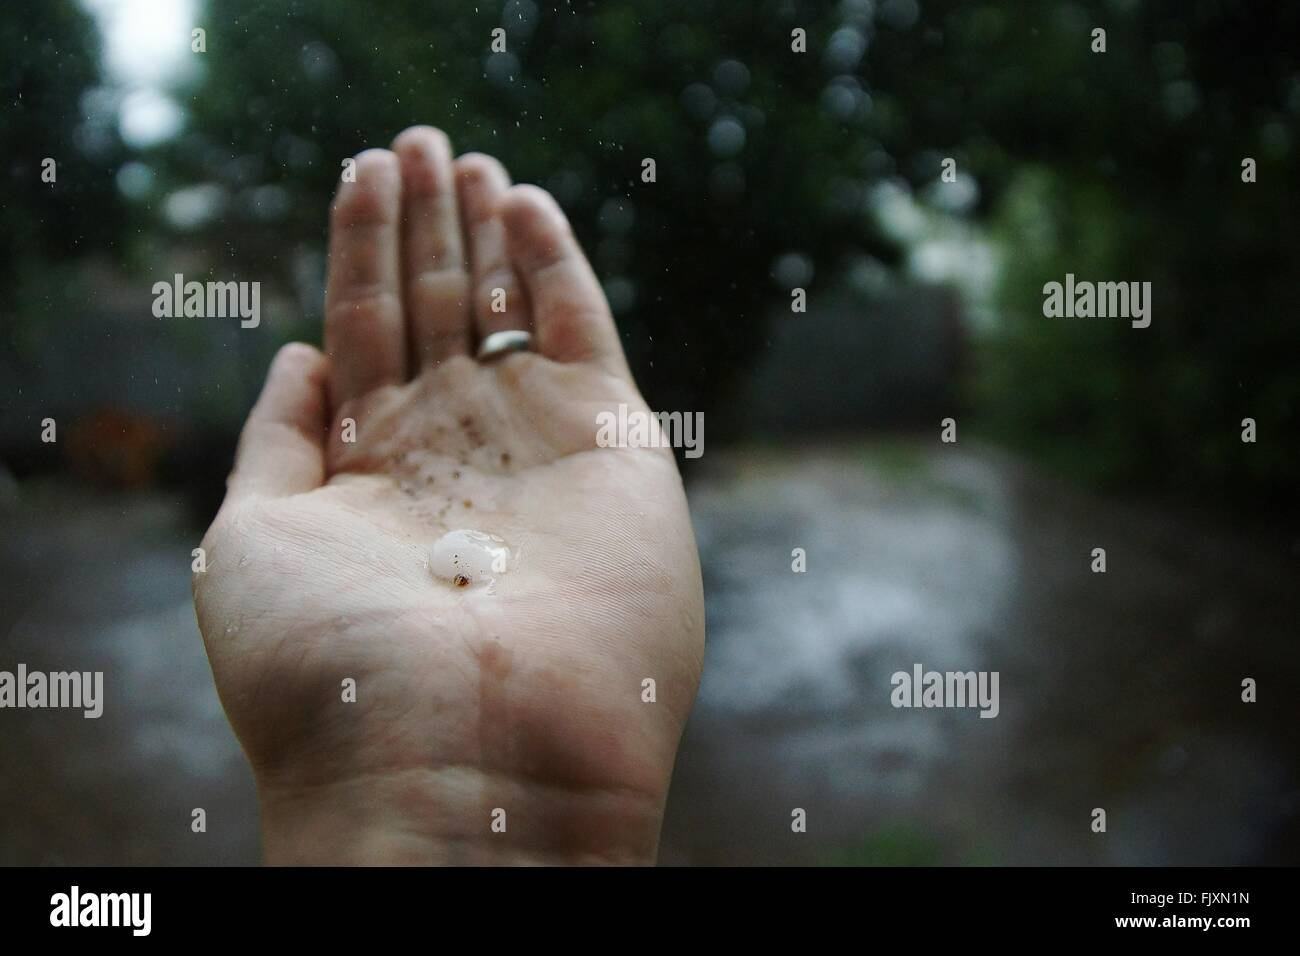 Cropped Hand Holding Water During Rainy Season - Stock Image